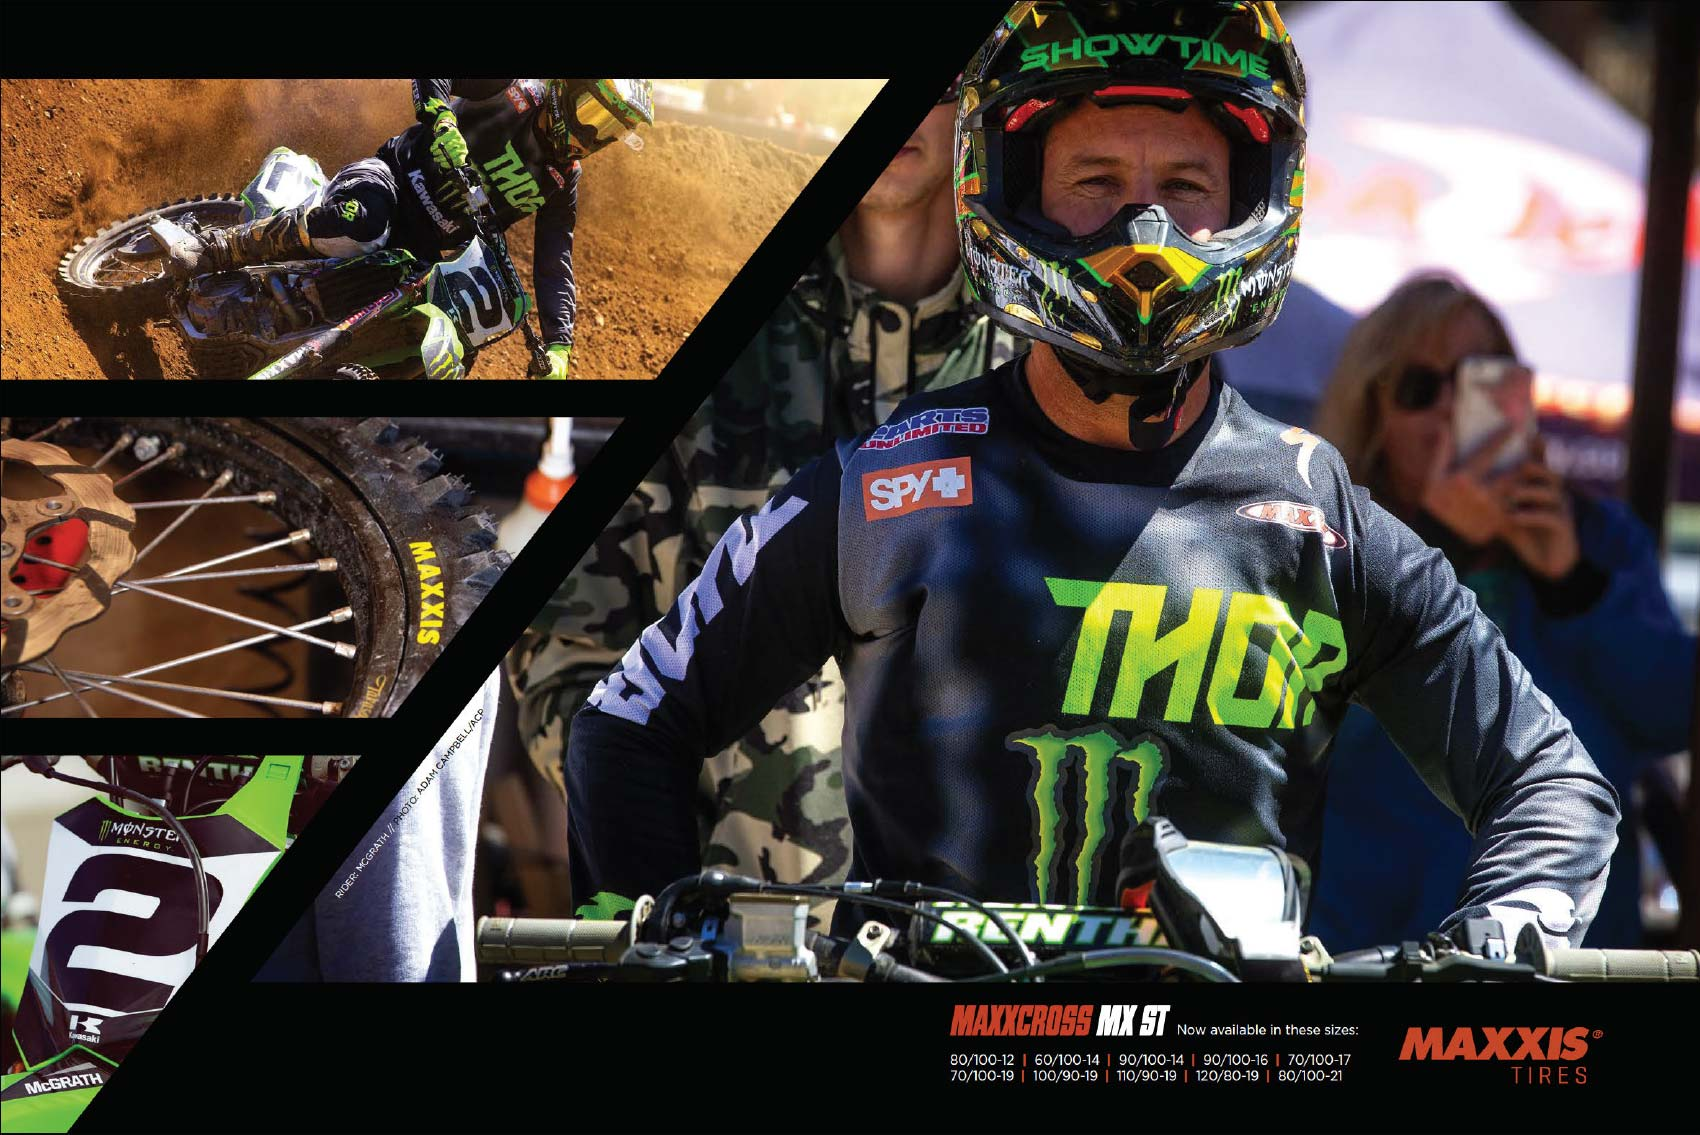 Racer X May 2019 - Maxxis Tires Advertisement